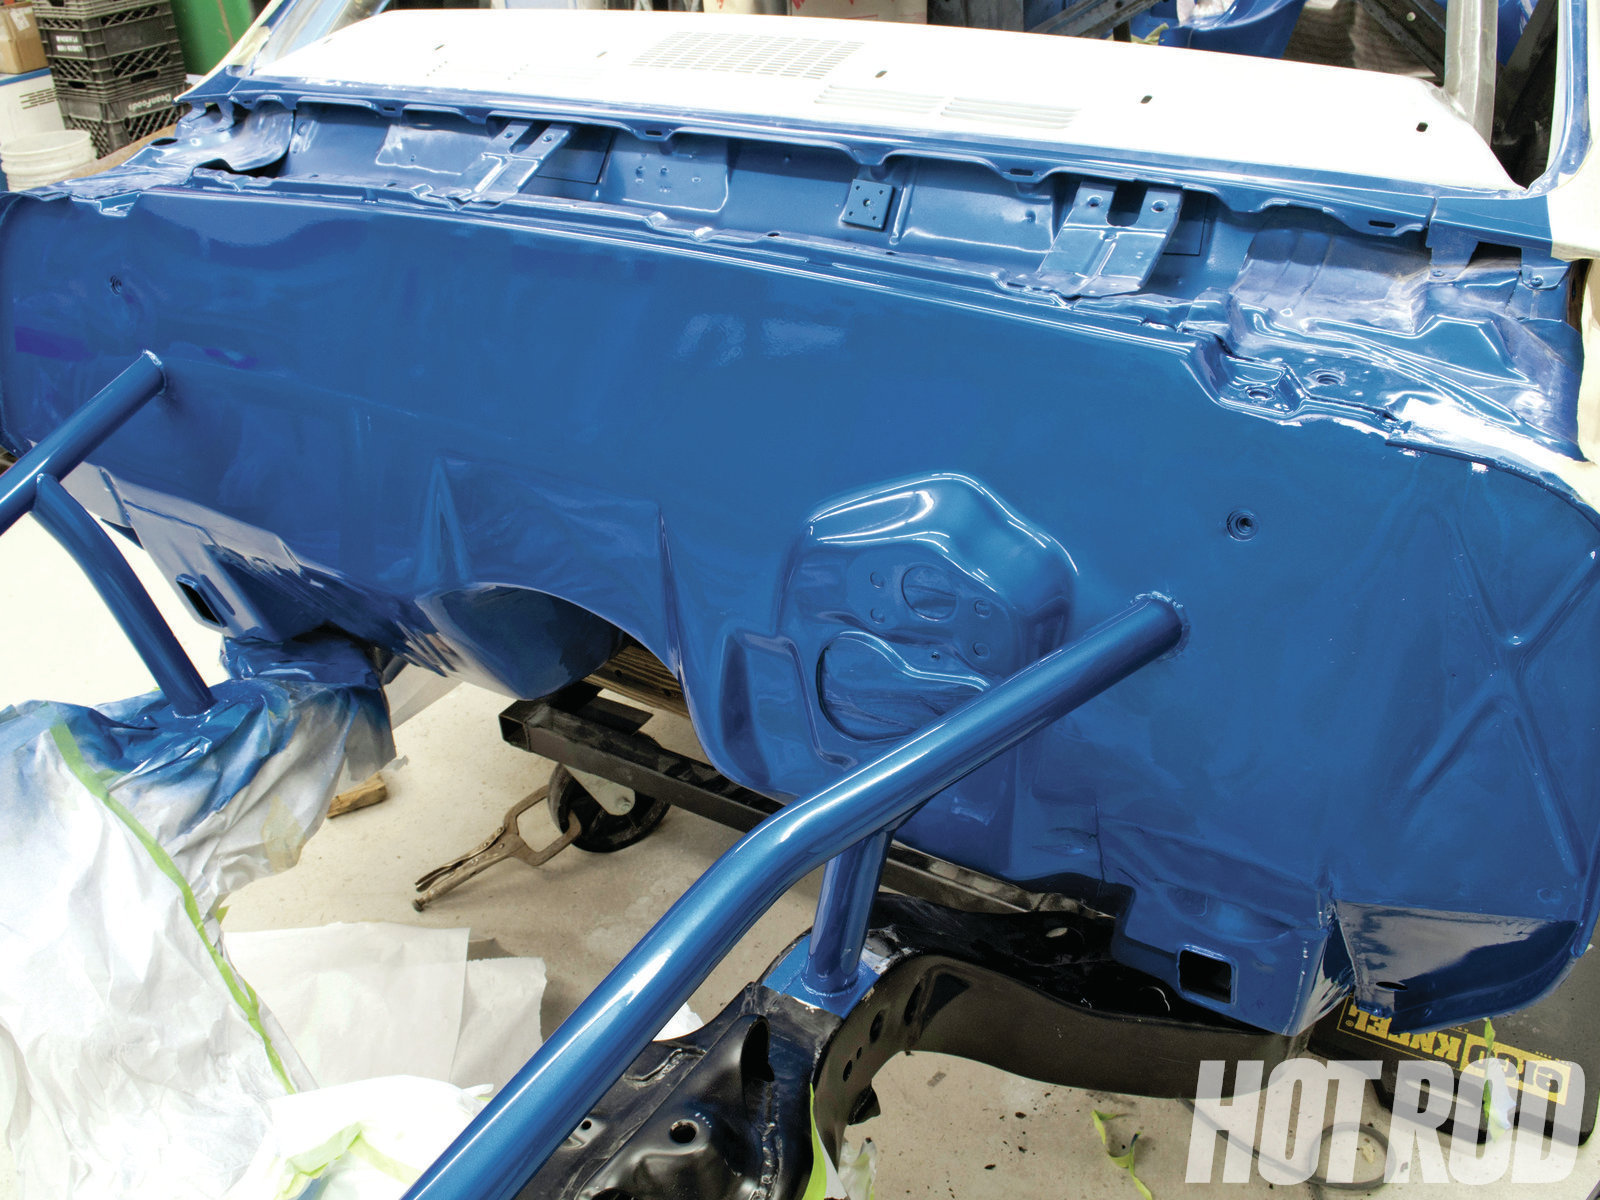 Here's the finished product. Tony and T.J. installed the Ultimate version of the ABC Performance Smoothie Panel in this Chevelle, deleting the windshield wiper motor and extending it all the way to the driver side of the car. You can see how flat and smooth the finished firewall looks. After color-sanding and buffing, this will look every bit as good as the hood.